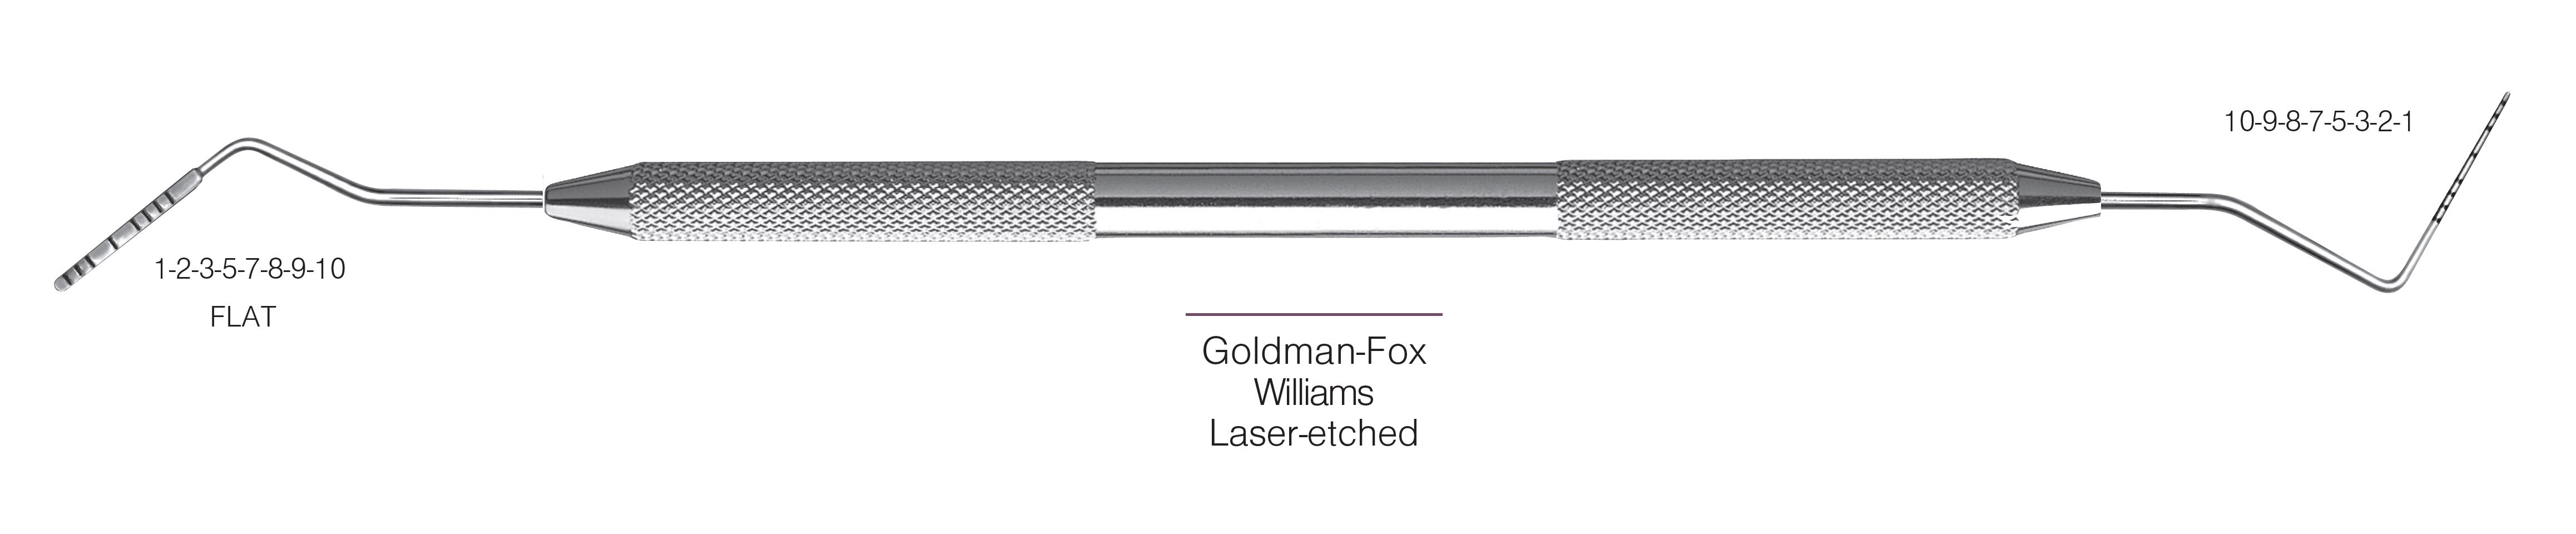 HF-PCPGF-W6-31, PROBES DOUBLE-ENDED Goldman-Fox/Williams, Laser-etched, Black markings, 1-2-3-5-7-8-9-10 mm FLAT & 10-9-8-7-5-3-2-1 mm, Handle round, Double Ended